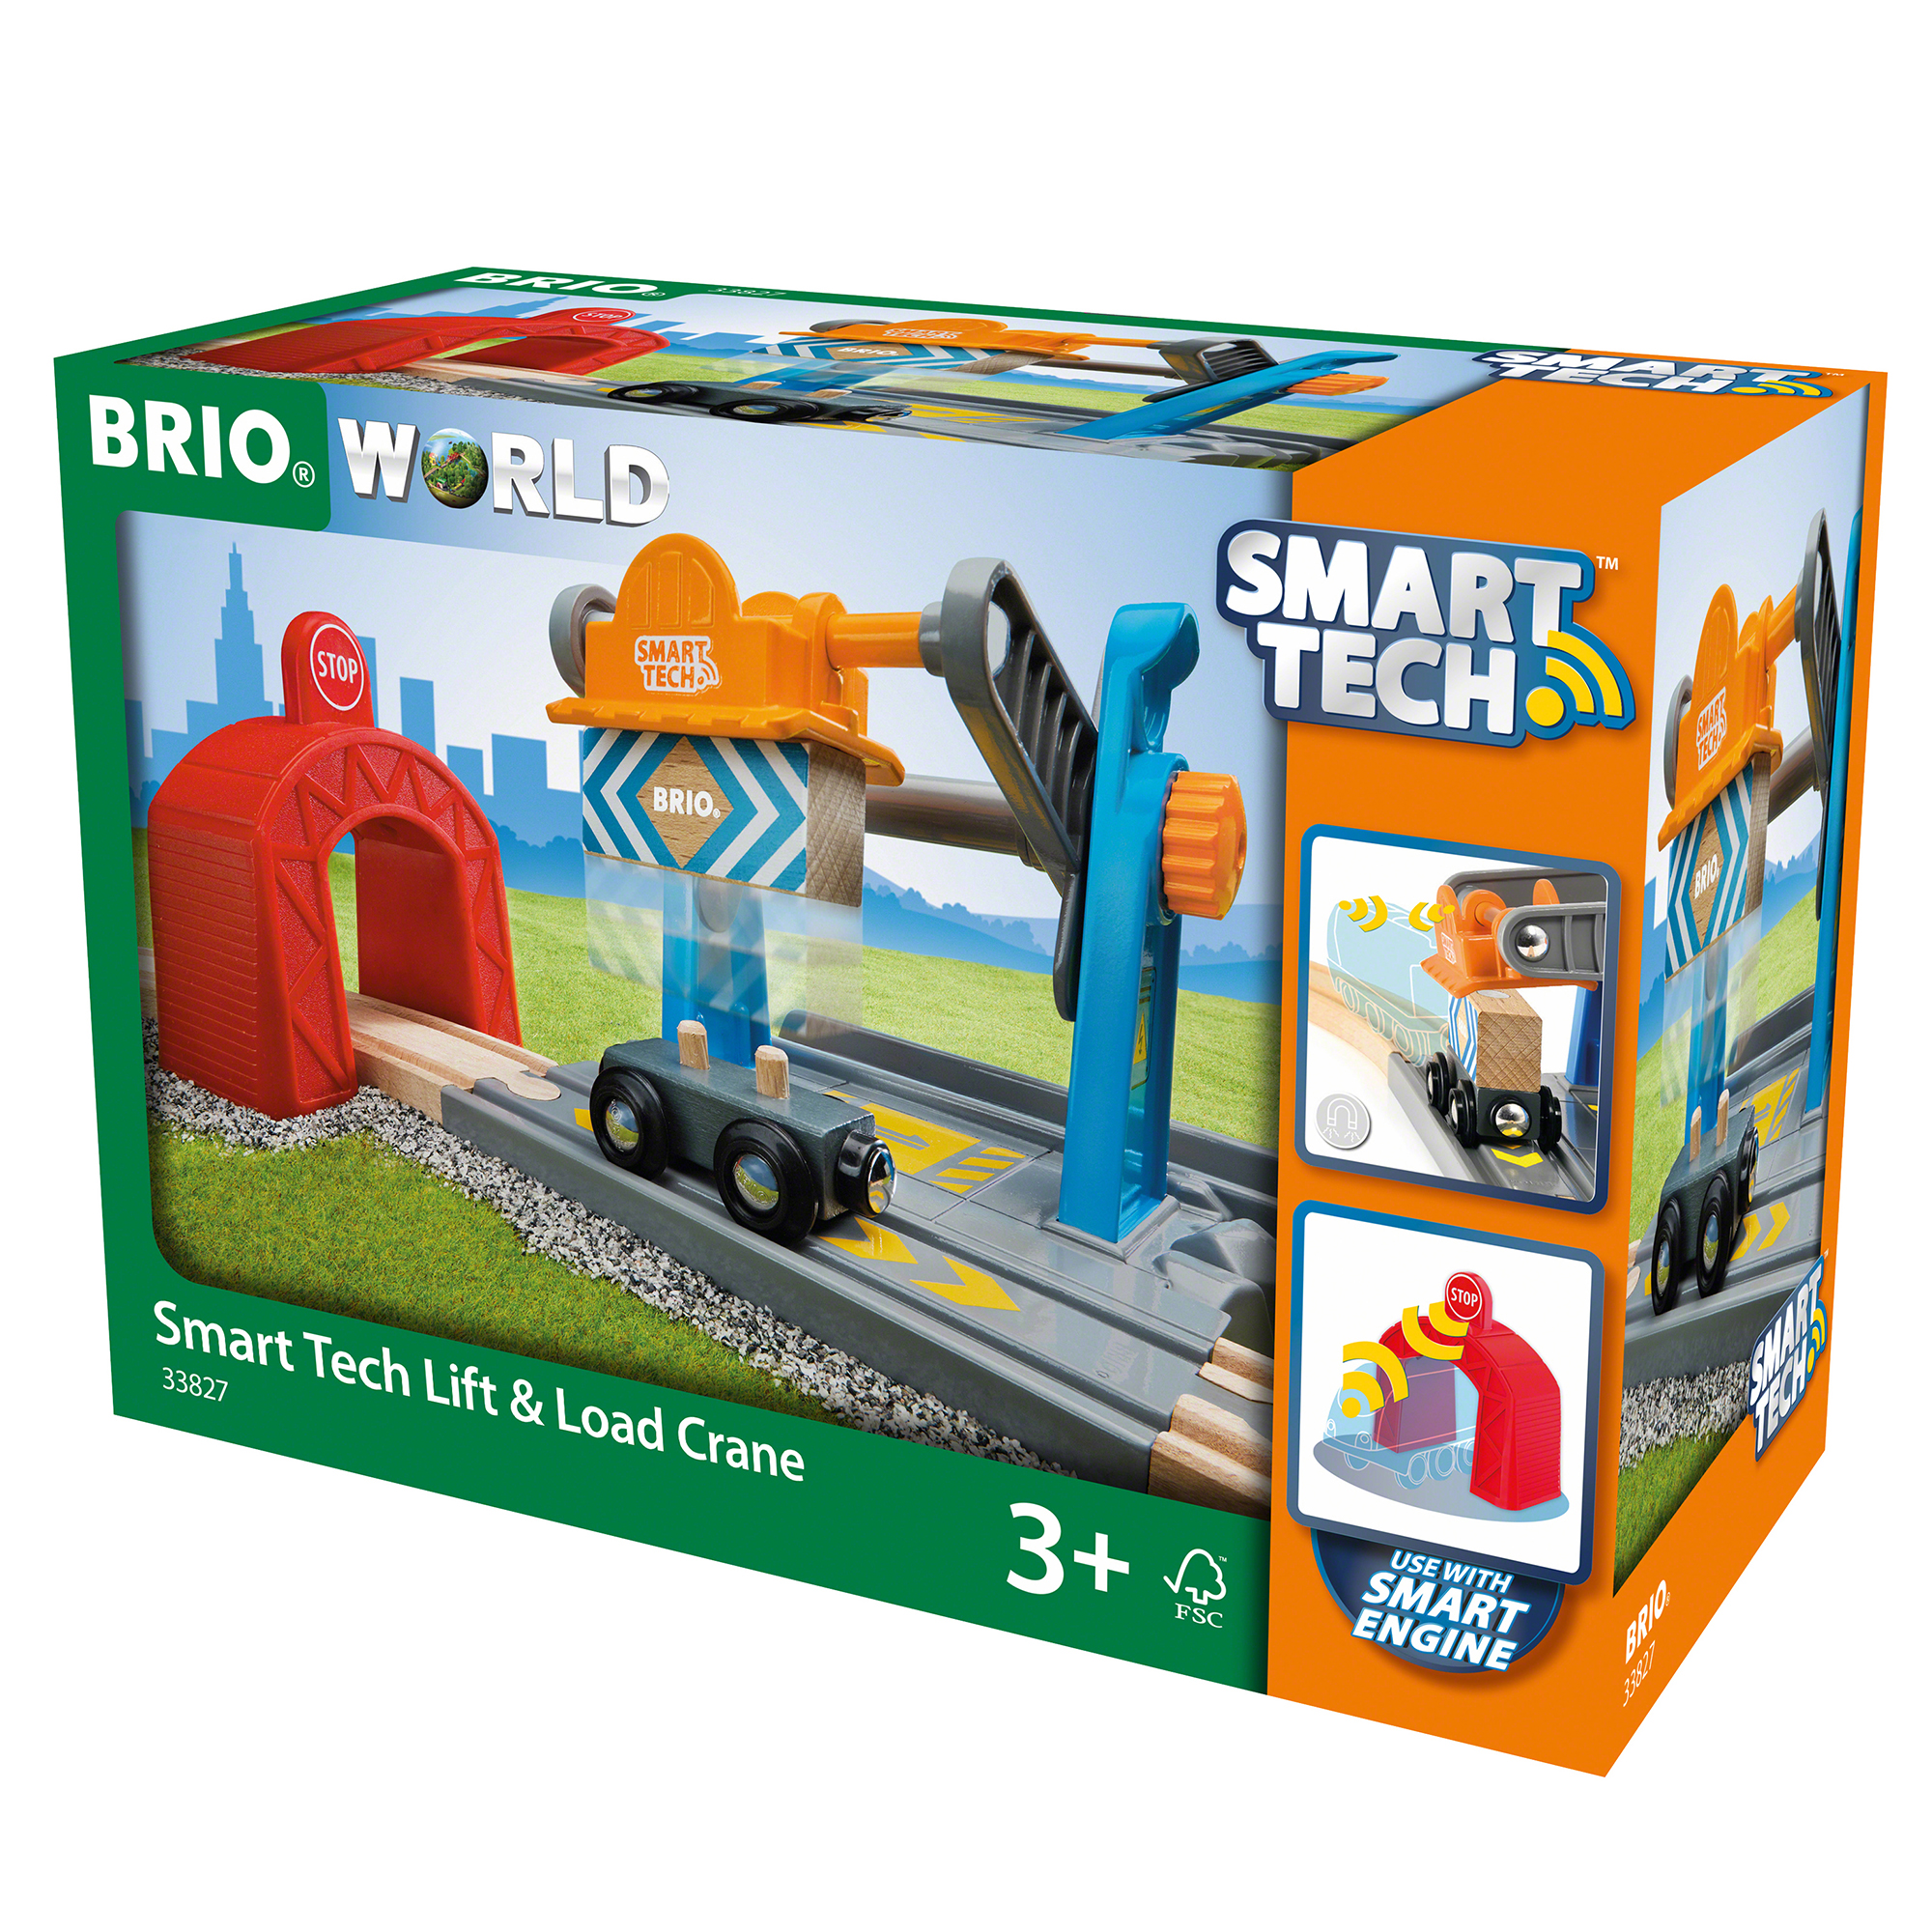 Picture of BRIO World Smart Tech Lift & Load Crane